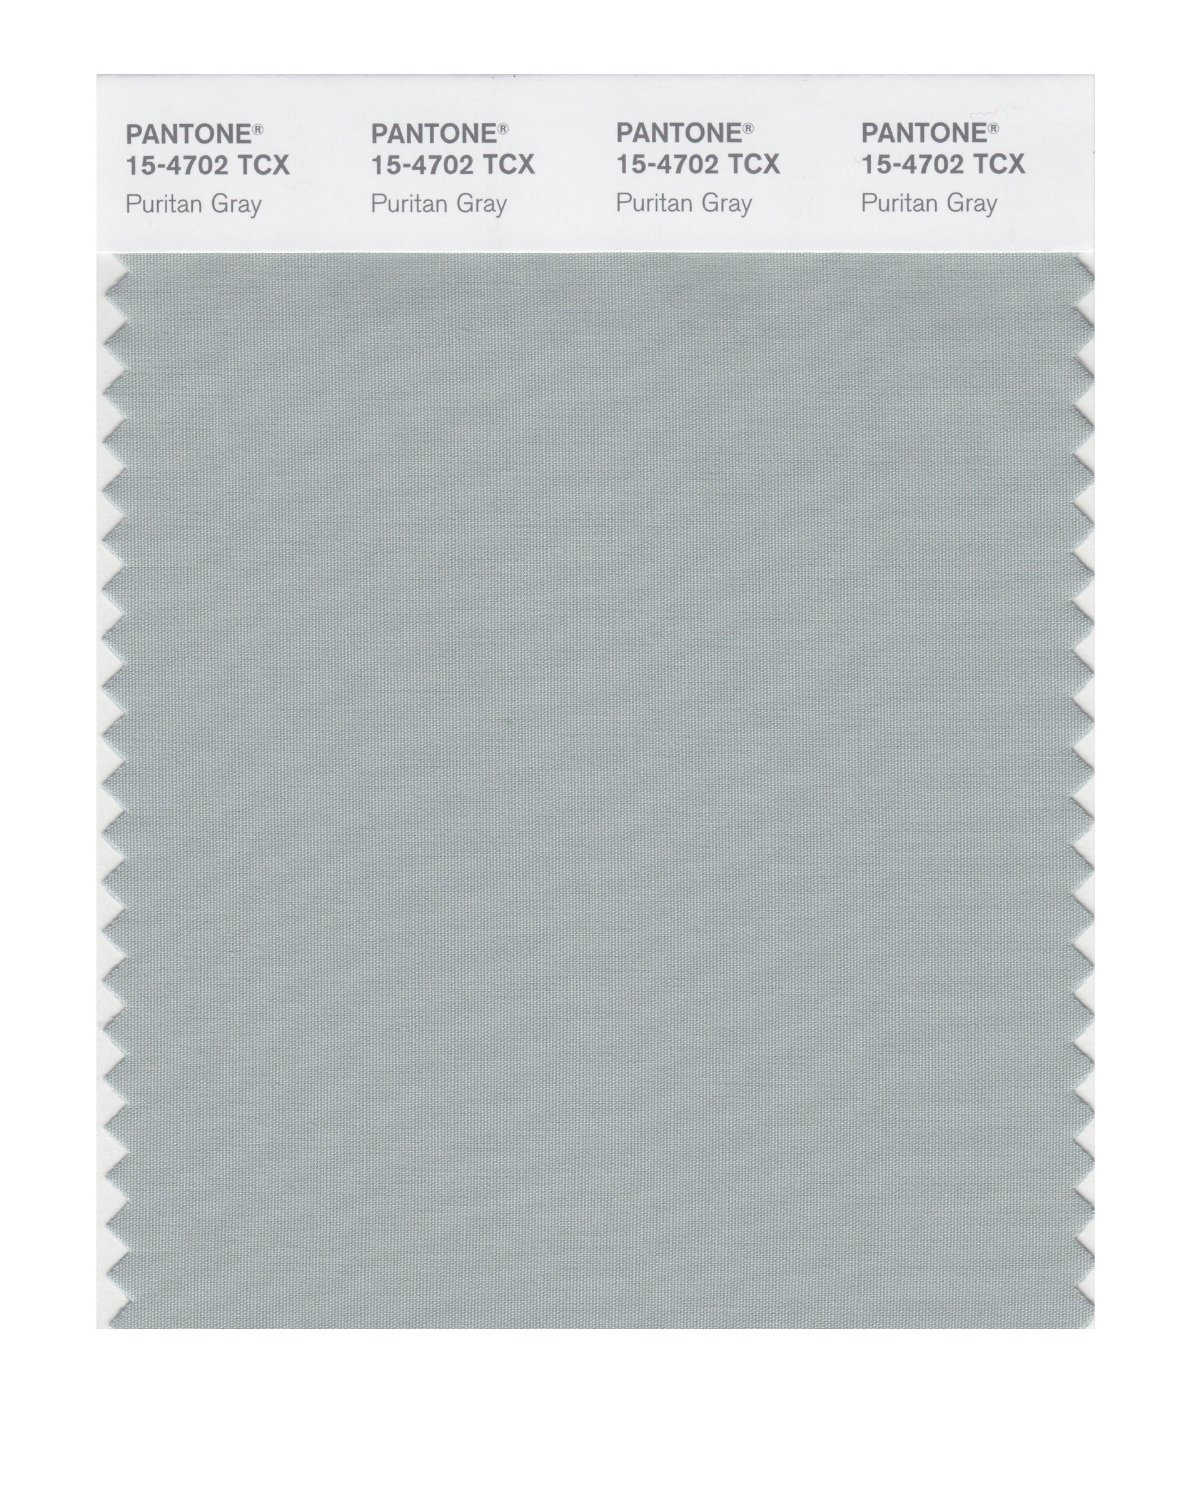 Pantone Smart Swatch 15-4702 Puritan Gray